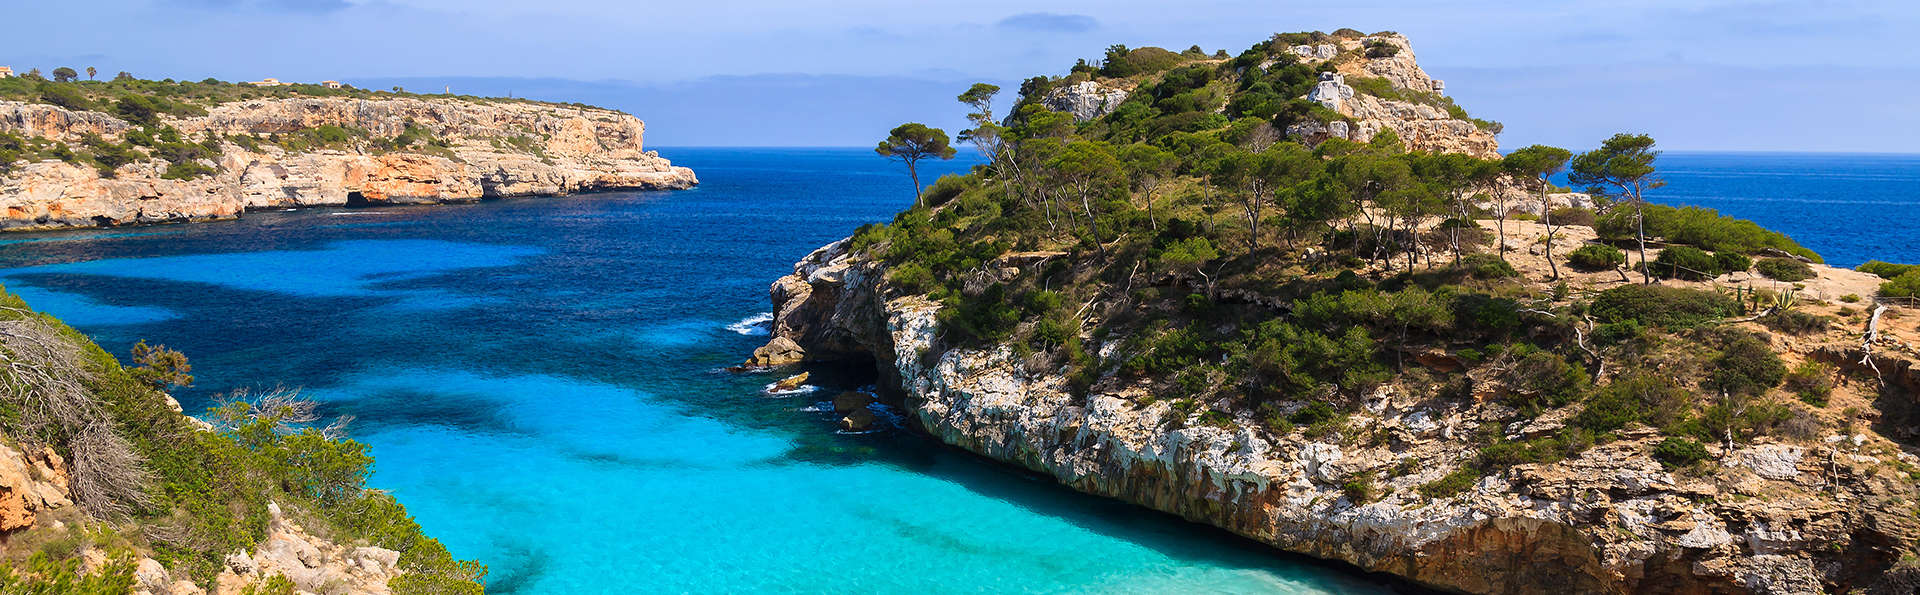 Hotel Can Joan Capó (Adults only) - Edit_Destination.jpg